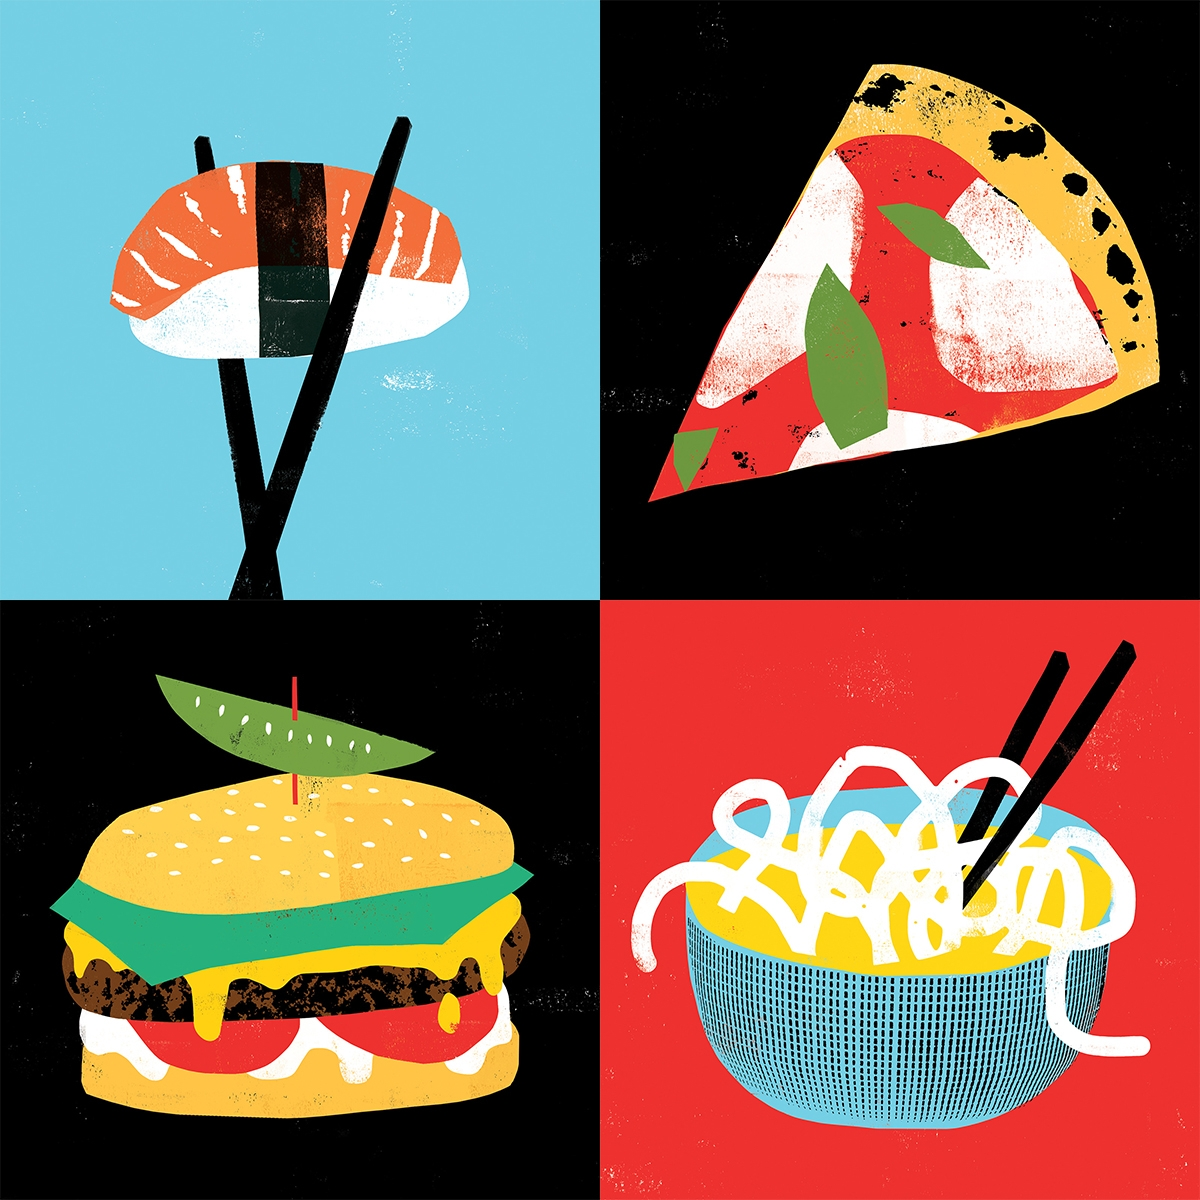 Food - illustration, grossillustration - grossillustration | ello